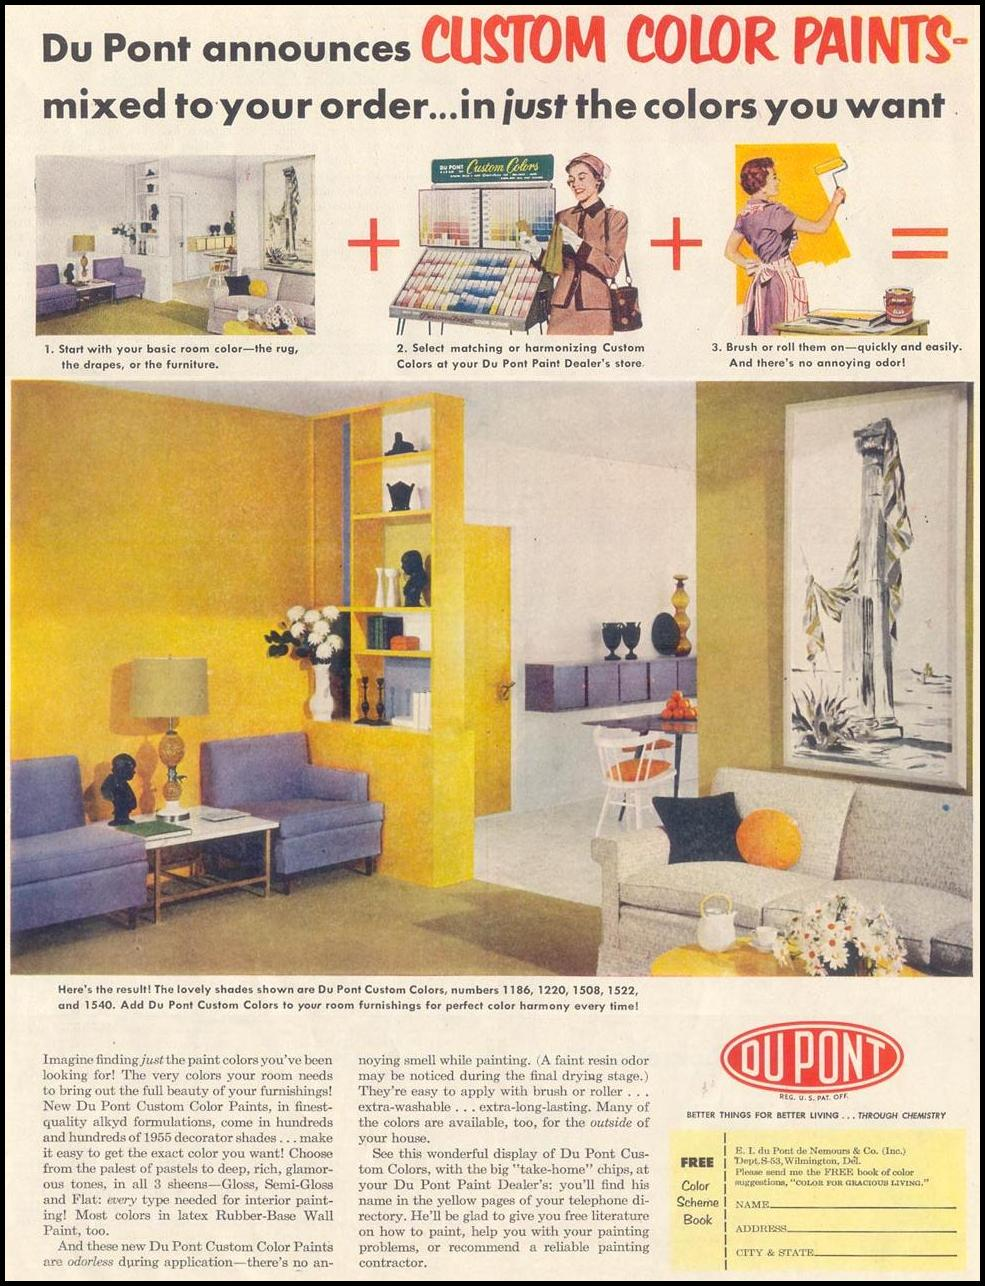 DU PONT CUSTOM COLOR PAINT SATURDAY EVENING POST 03/26/1955 p. 11